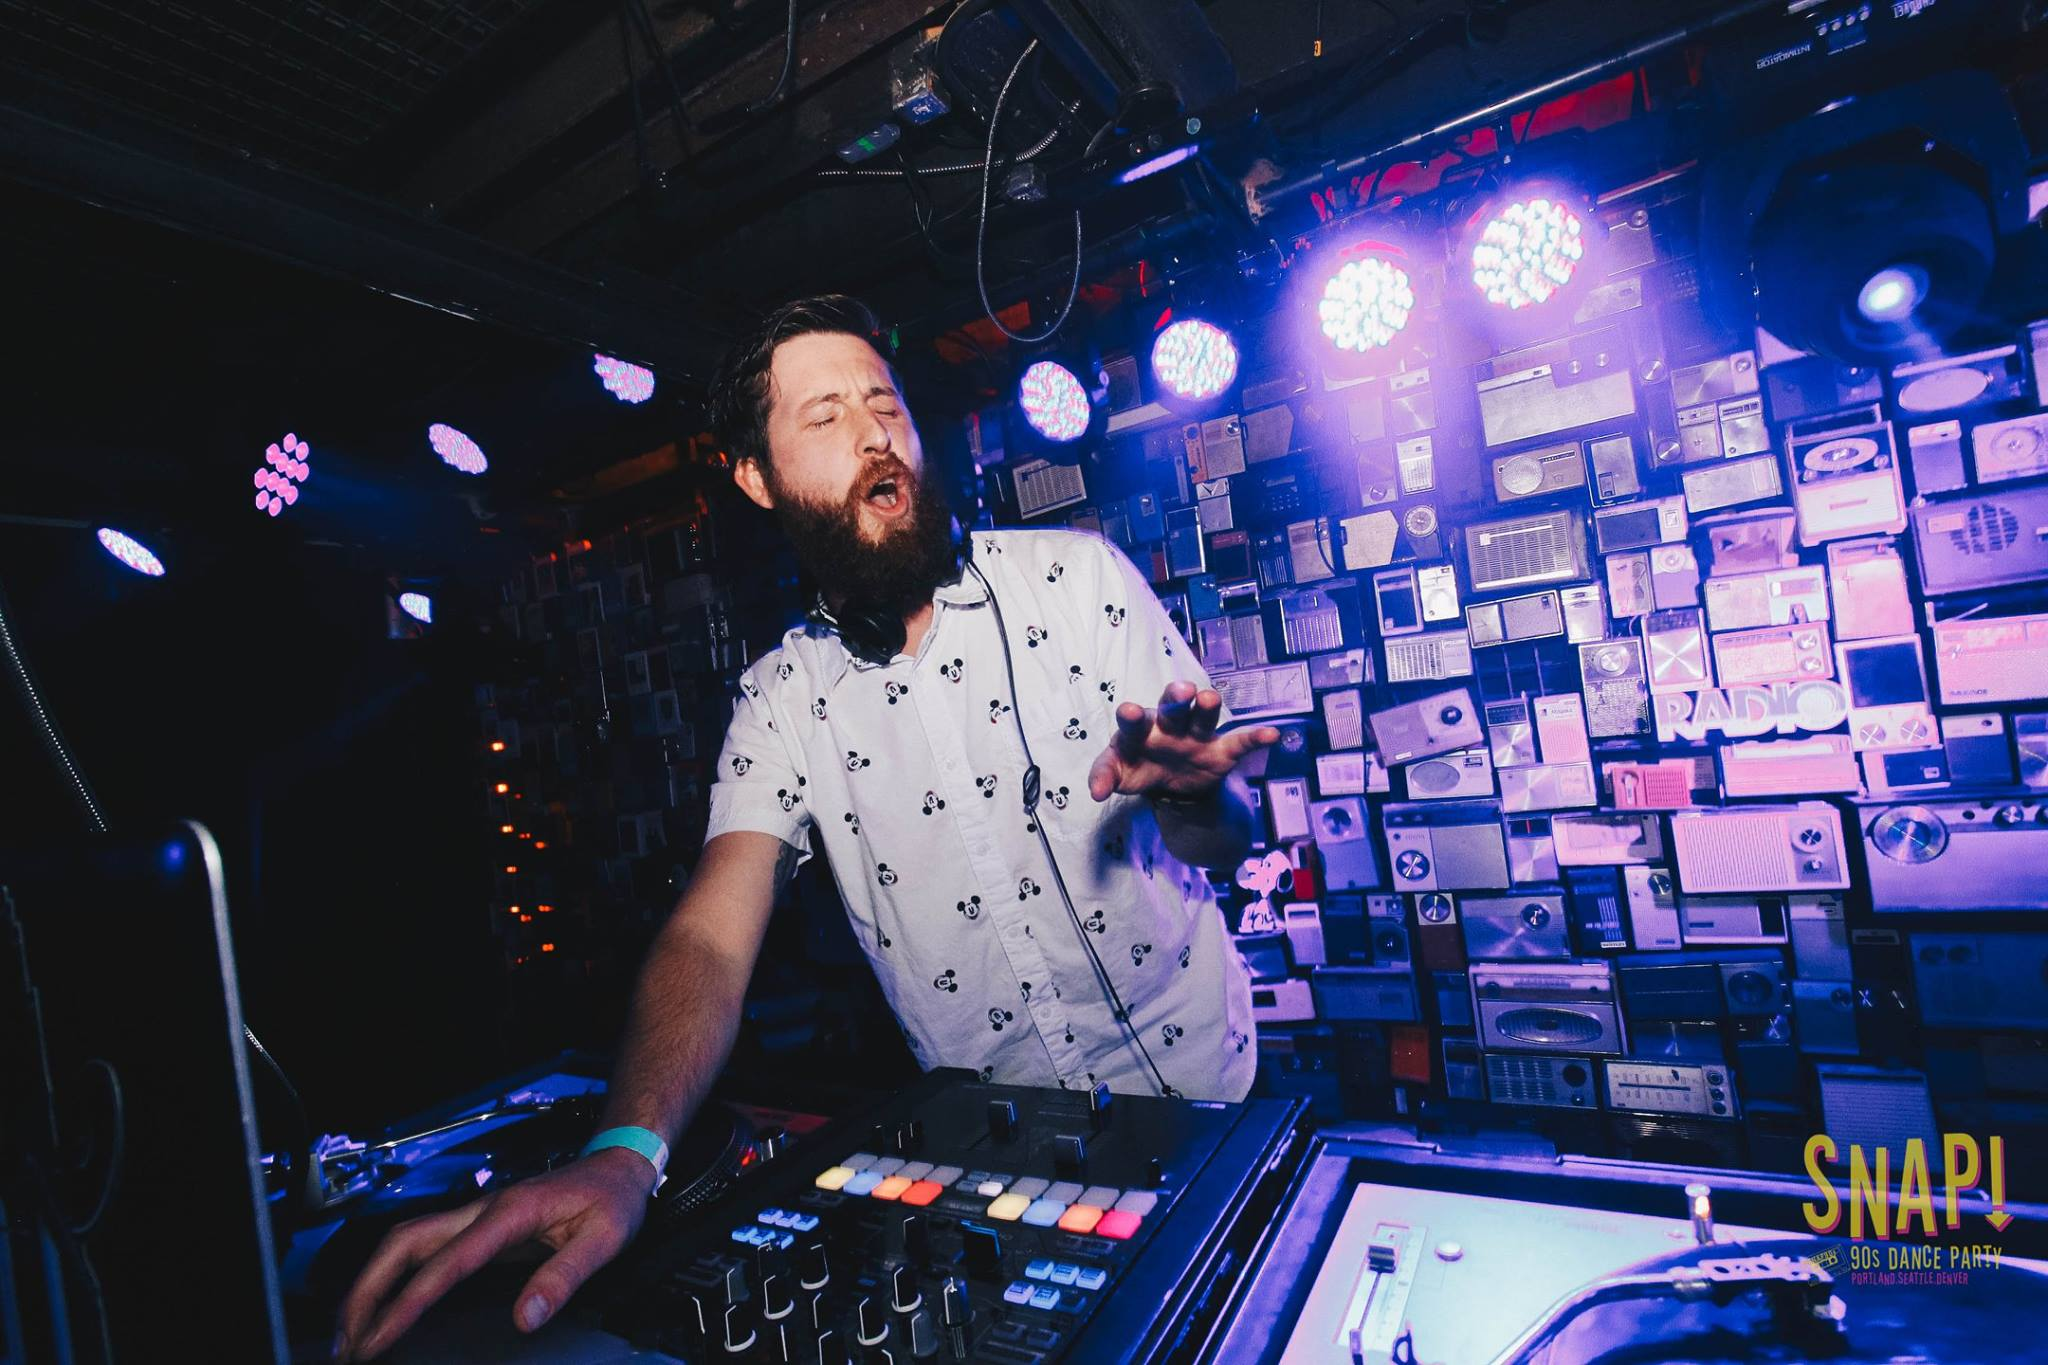 Yo Huck   Eric Lake aka Yo Huck brings his eclectic taste and aggressive mixing style to the SNAP crew to keep the crowd guessing what genre might be coming next. Beyond SNAP, you can find Huck playing funky house as part of his residency at STEAM Wednesdays at Bar Standard.